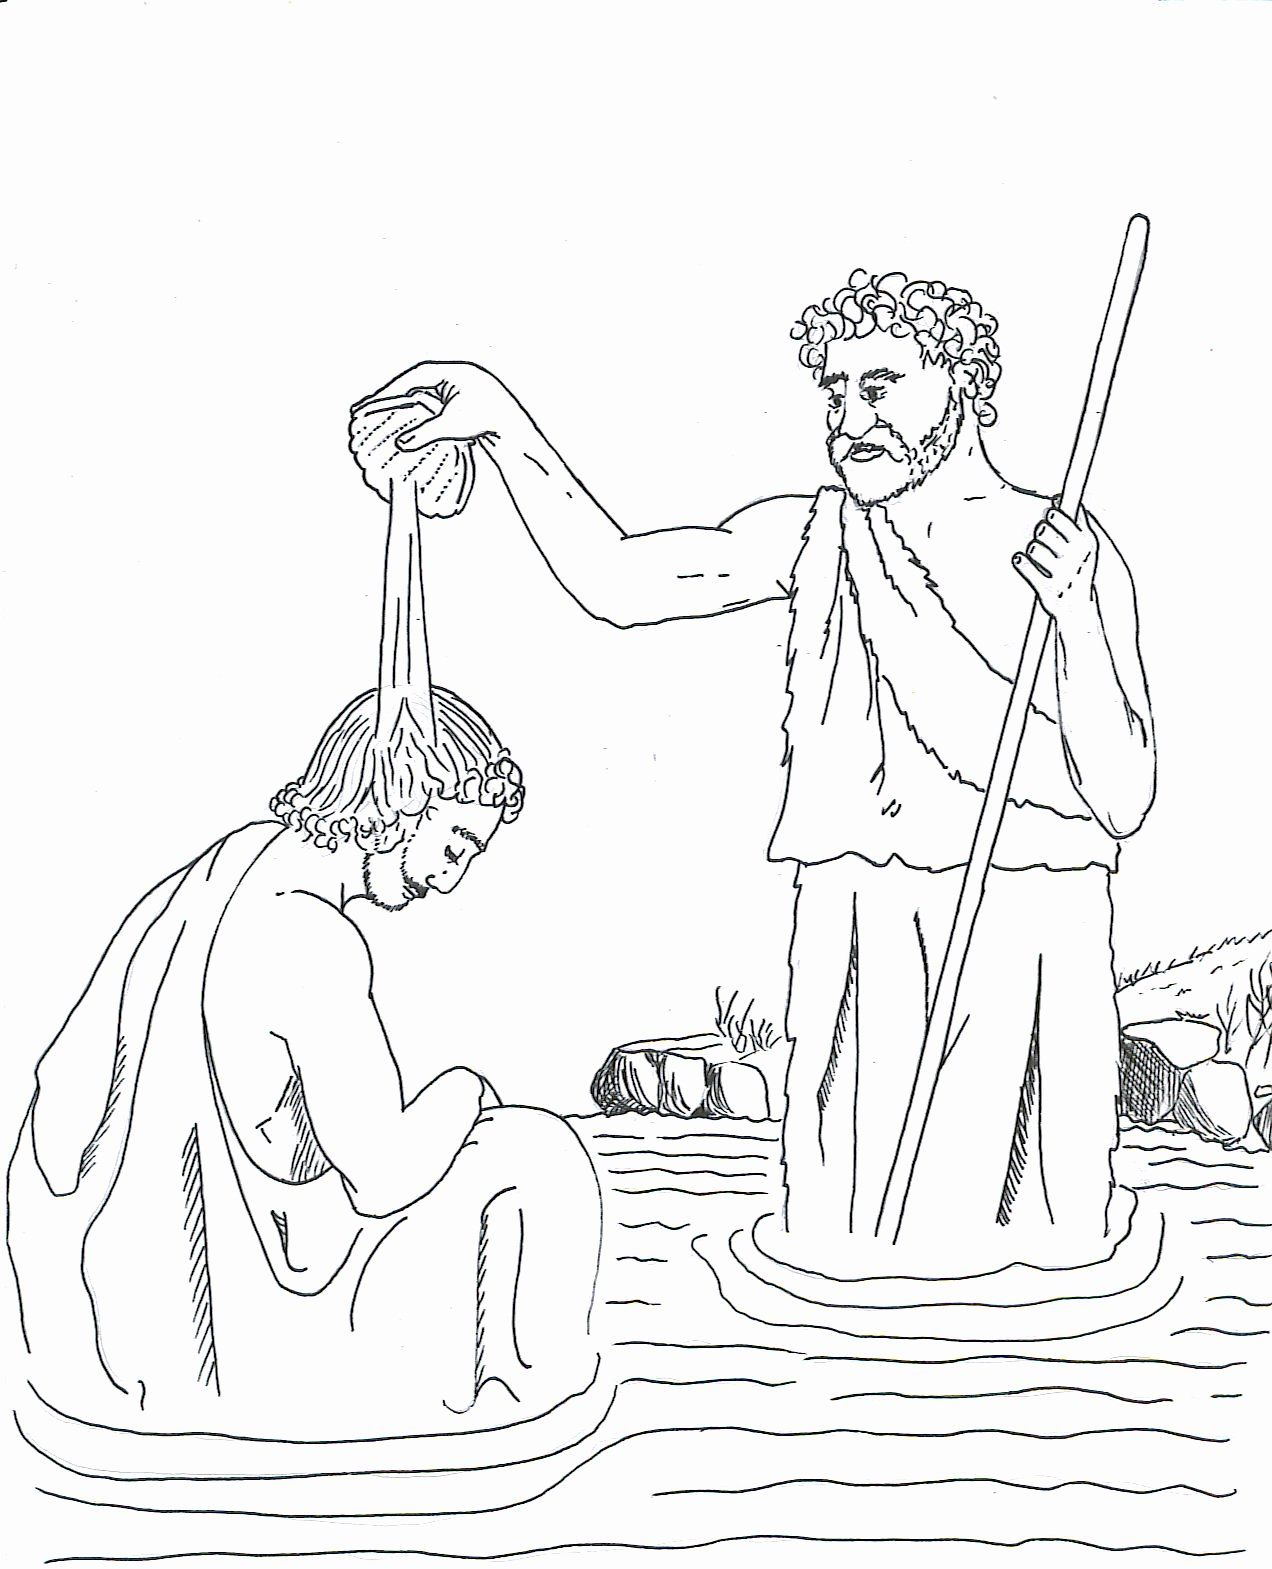 John The Baptist Coloring Page Luxury Free Coloring Page Saint John The Baptist Baptizing With Coloring Pages Bible Coloring Pages Christian Coloring